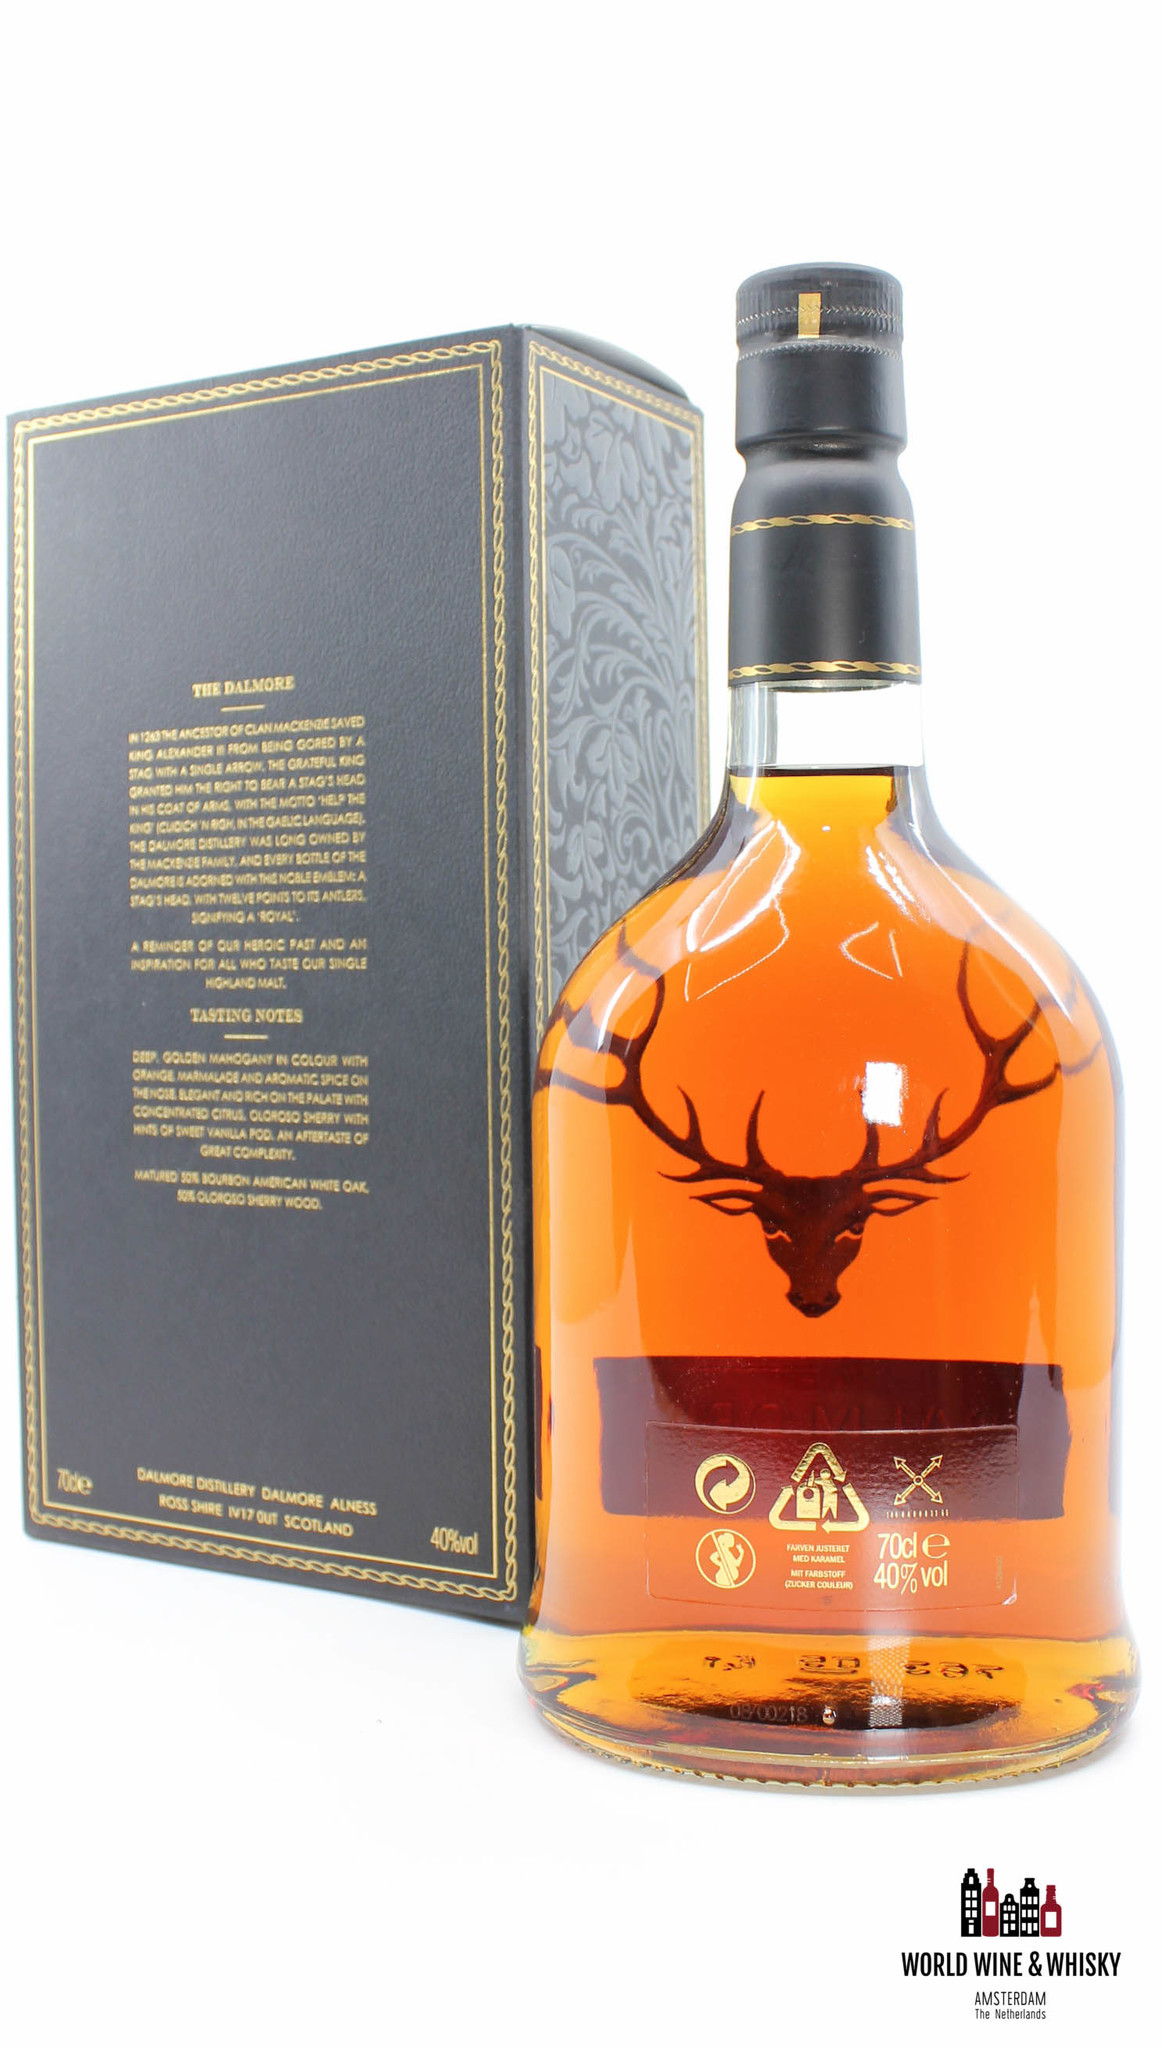 Dalmore Dalmore 12 Years Old - Golden Mahogany 2008 40% (700 ml)